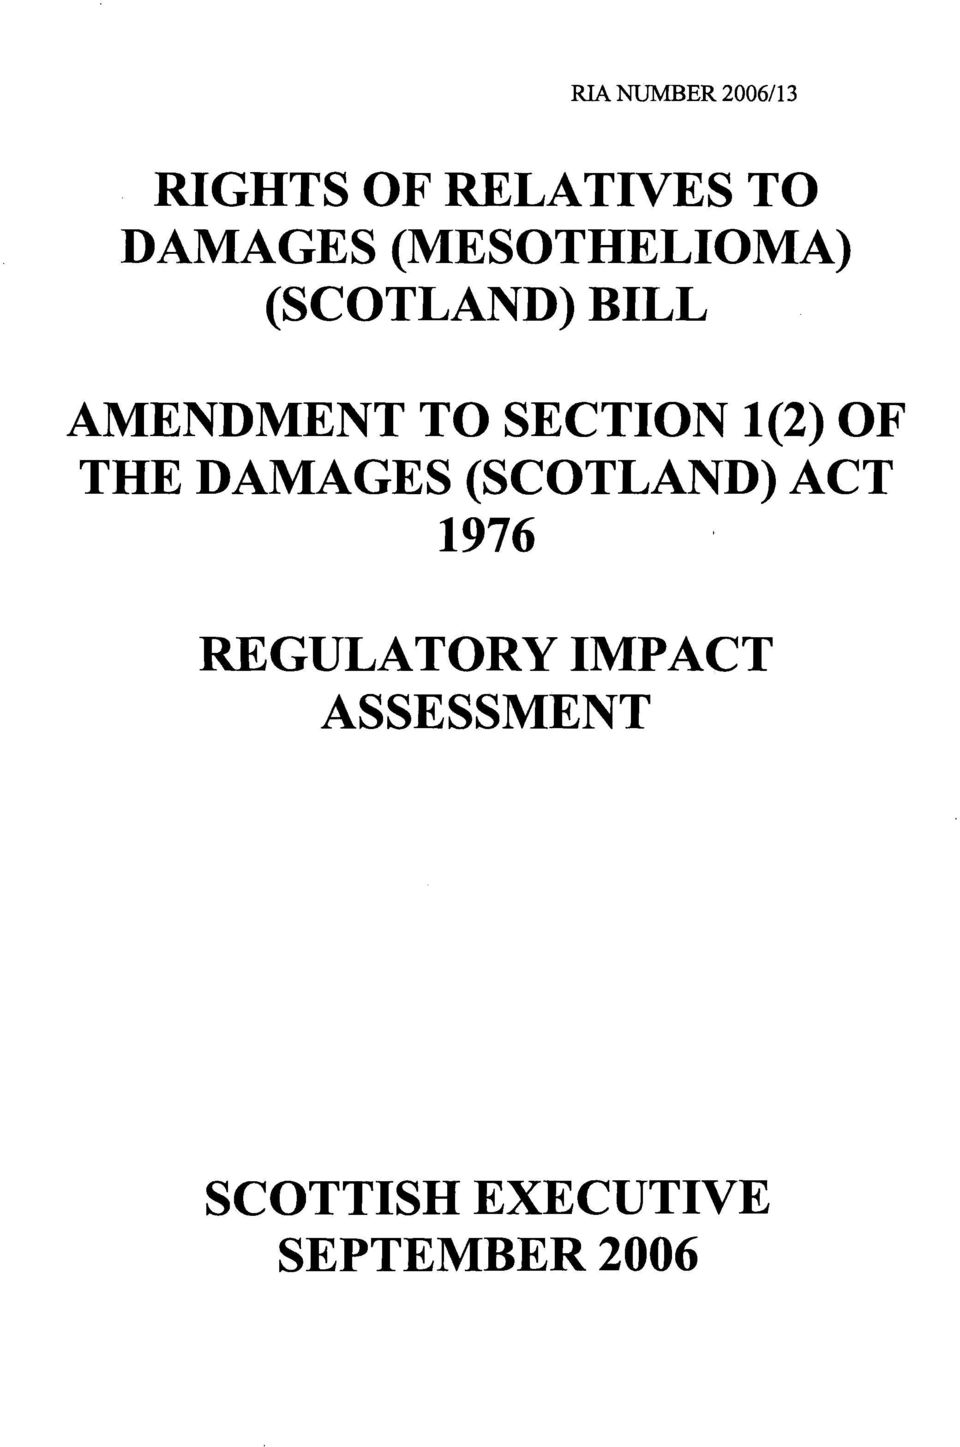 SECTION 1(2) OF THE DAMAGES (SCOTLAND) ACT 1976